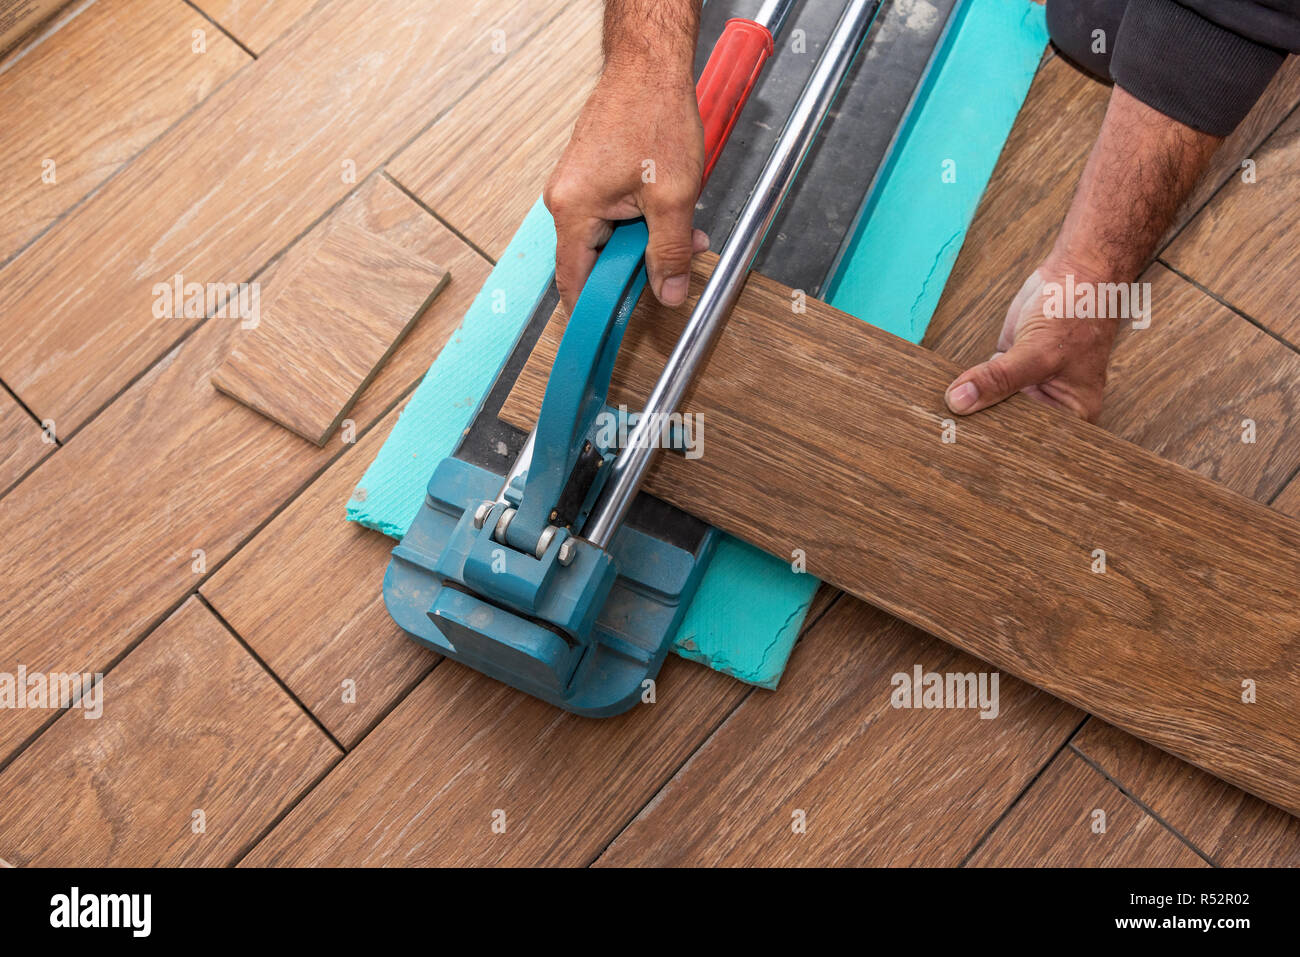 The man is cutting the floor tiles using a tile cutter